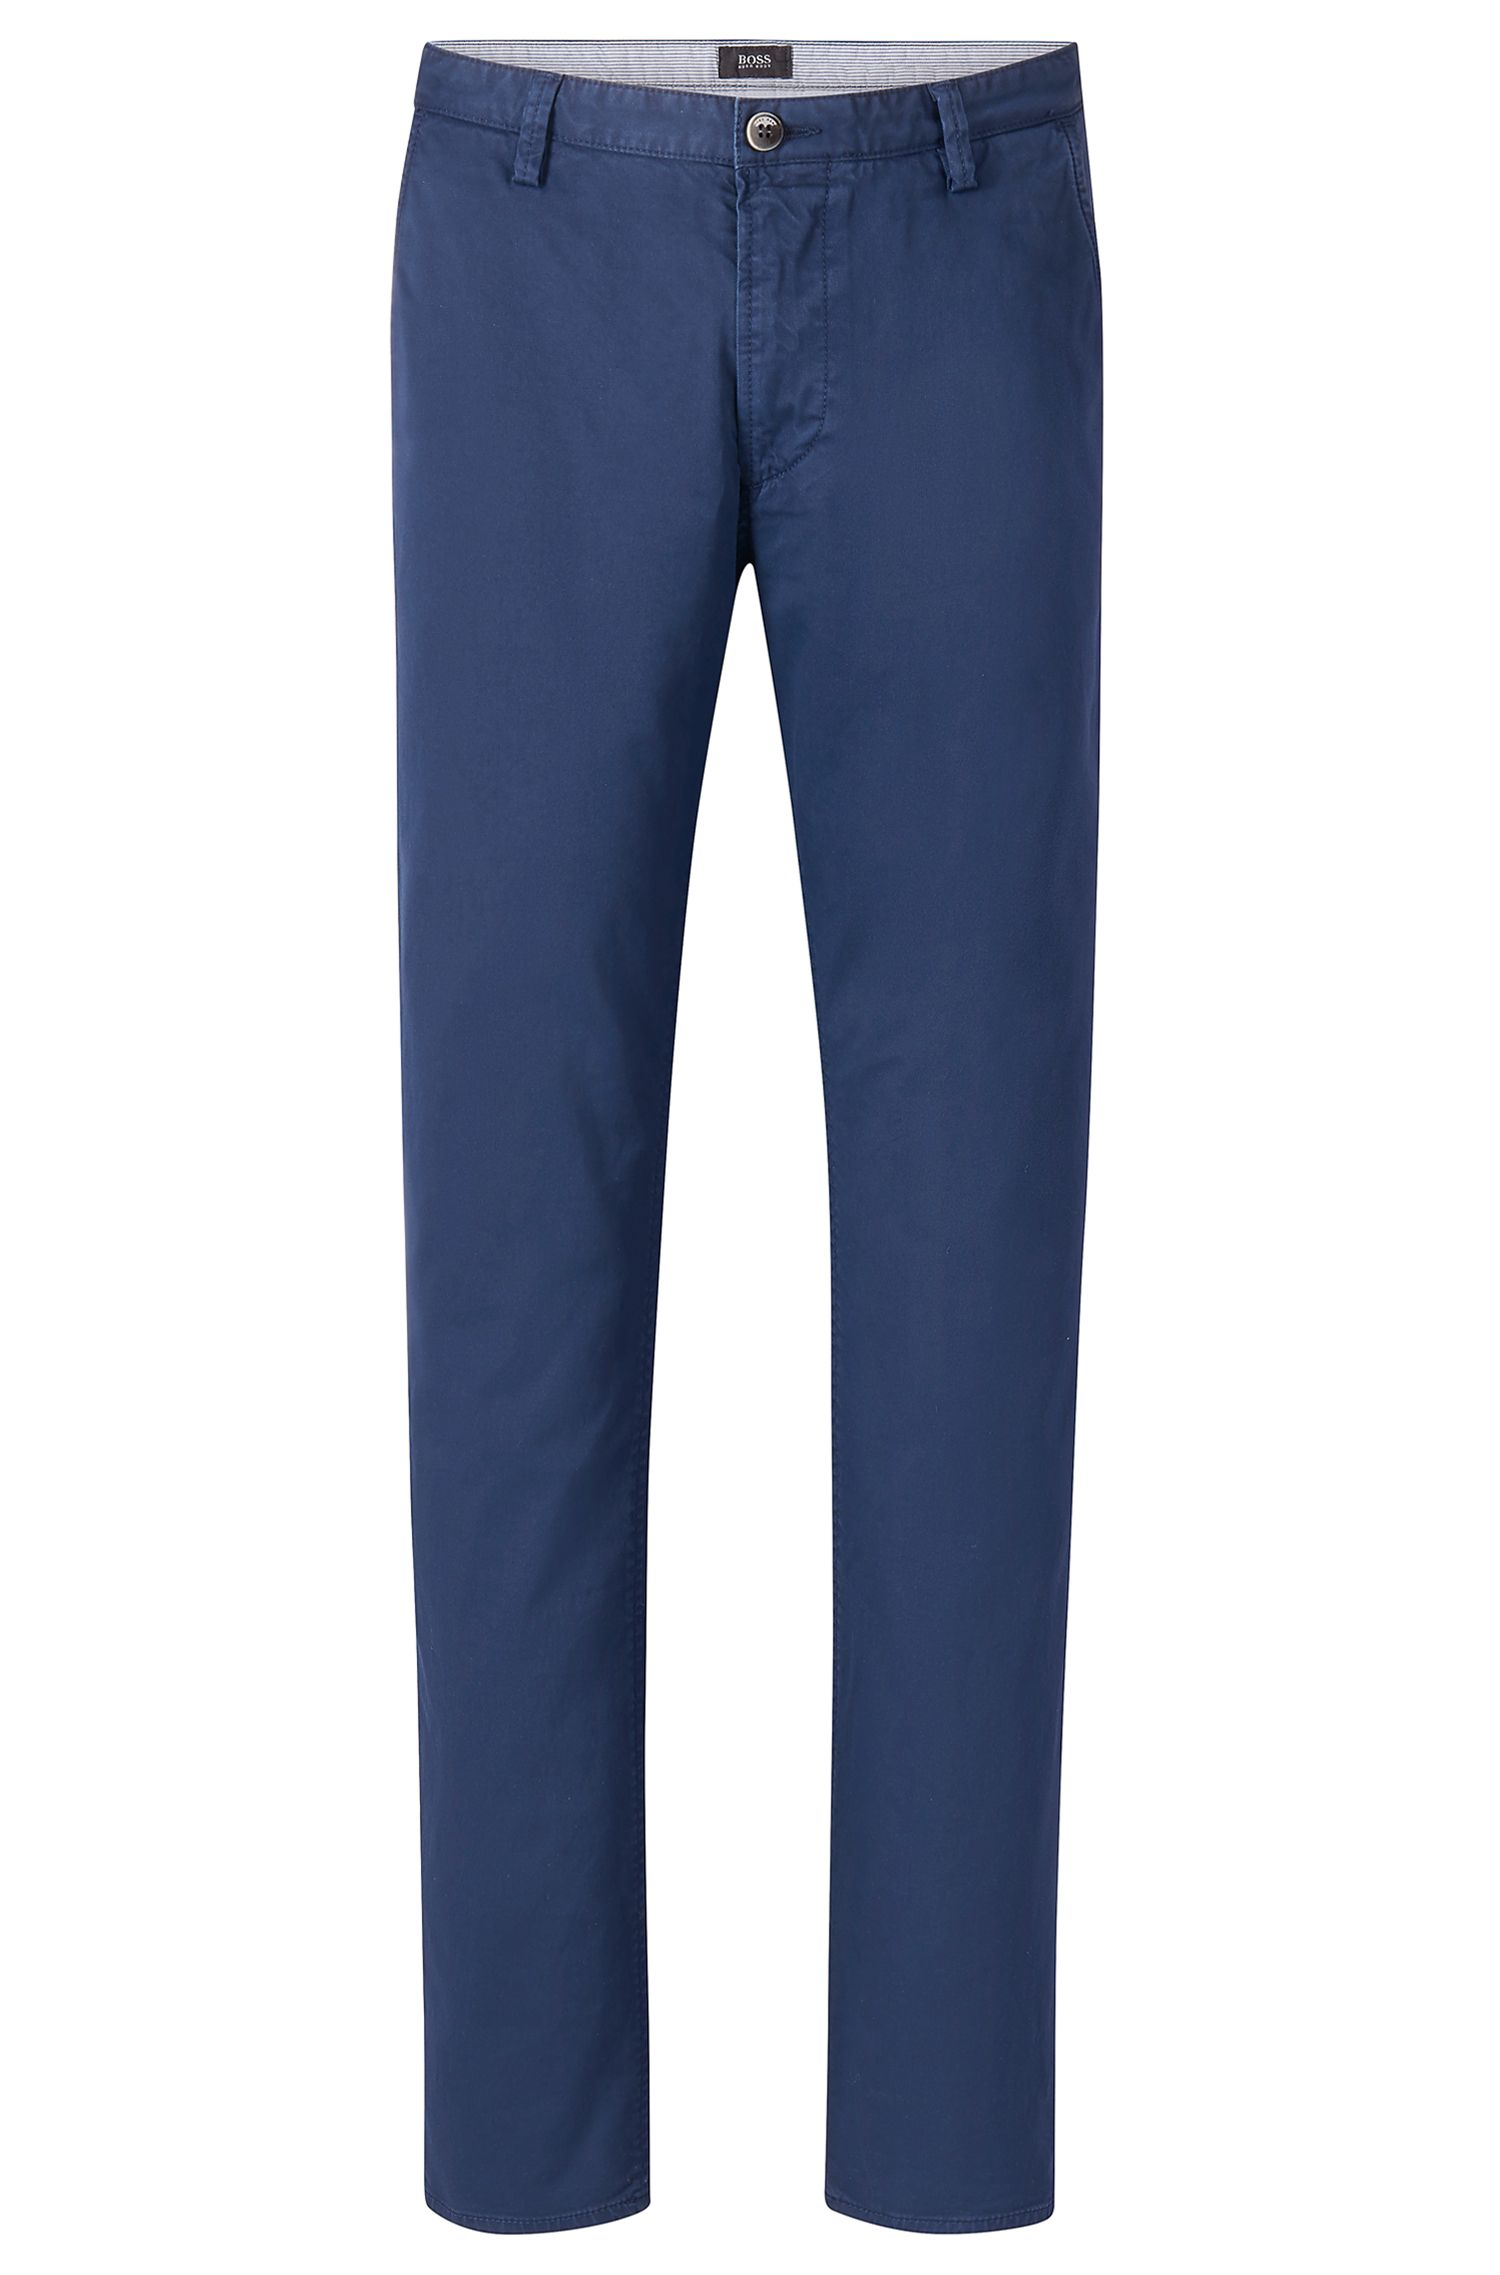 Stretch Cotton Colored Chino Pant, Slim Fit   Rice